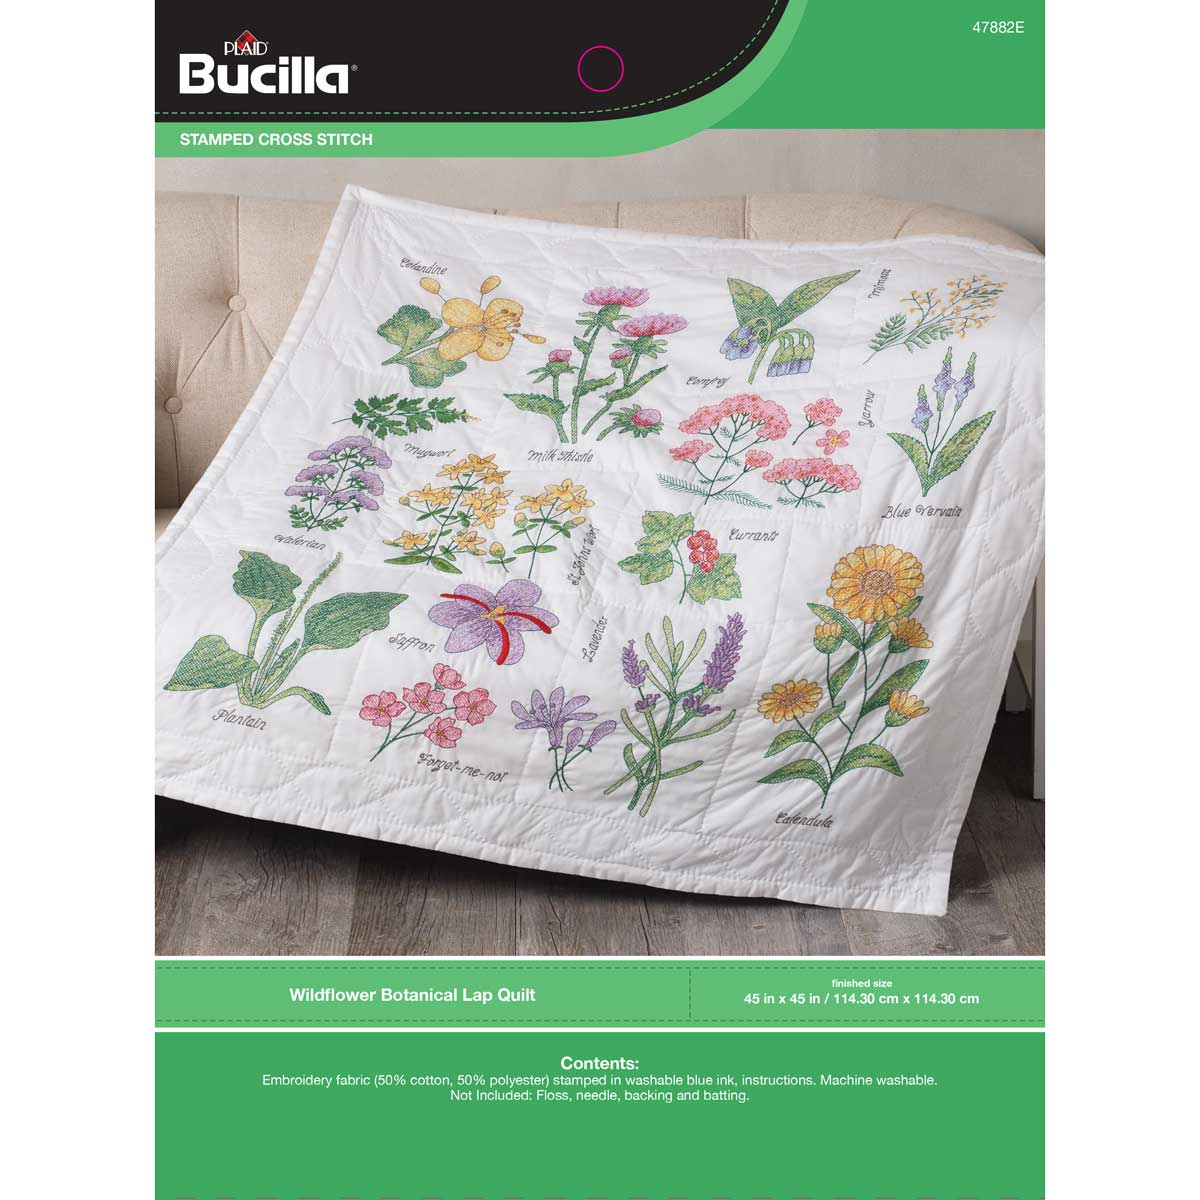 Bucilla ® Stamped Cross Stitch - Lap Quilts - Wildflower Botanical - 47882E